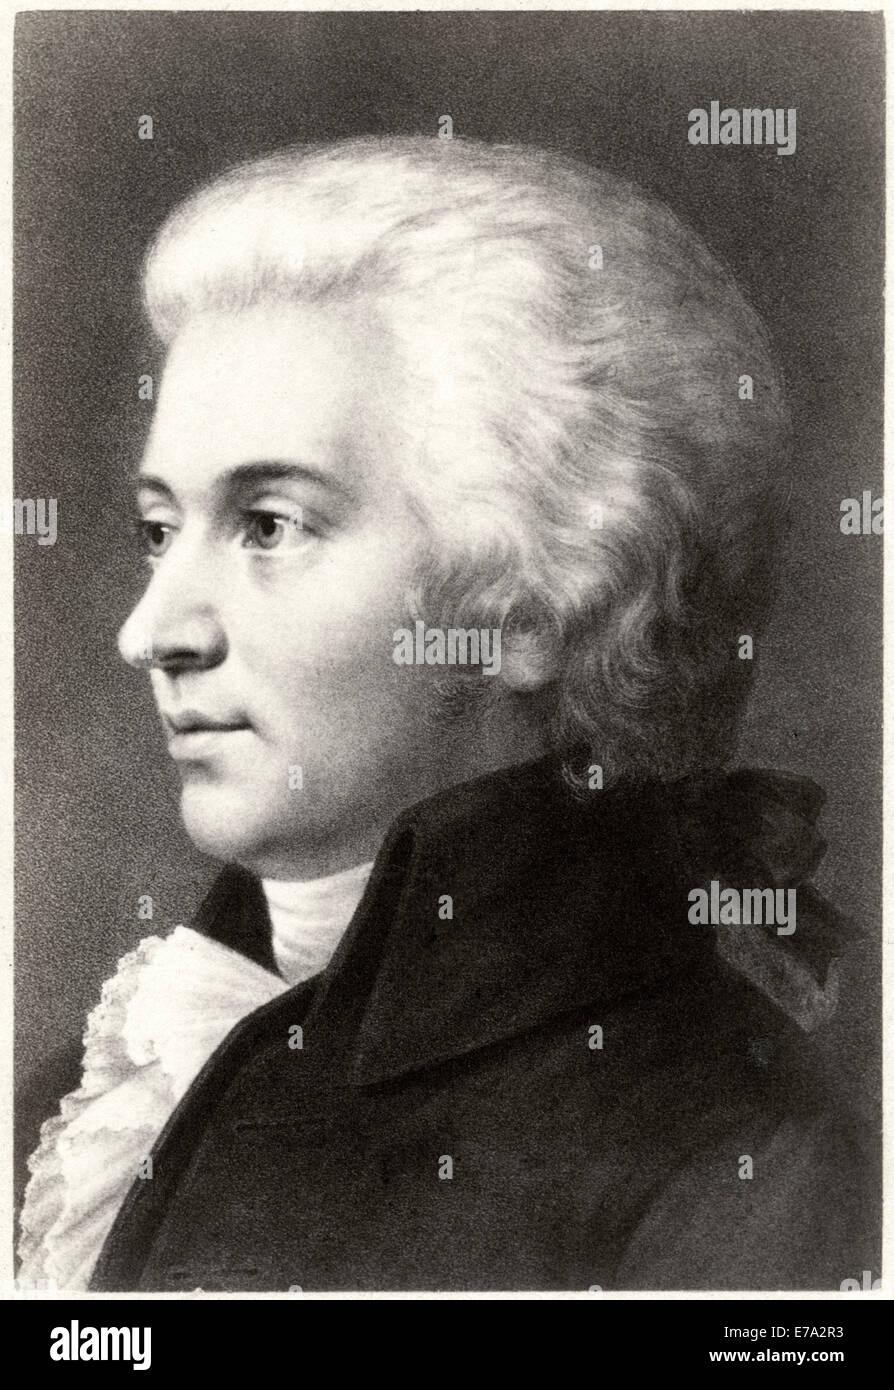 Wolfgang Amadeus Mozart (1756 –1791), Composer during Classical Era, Portrait, Cabinet Card - Stock Image